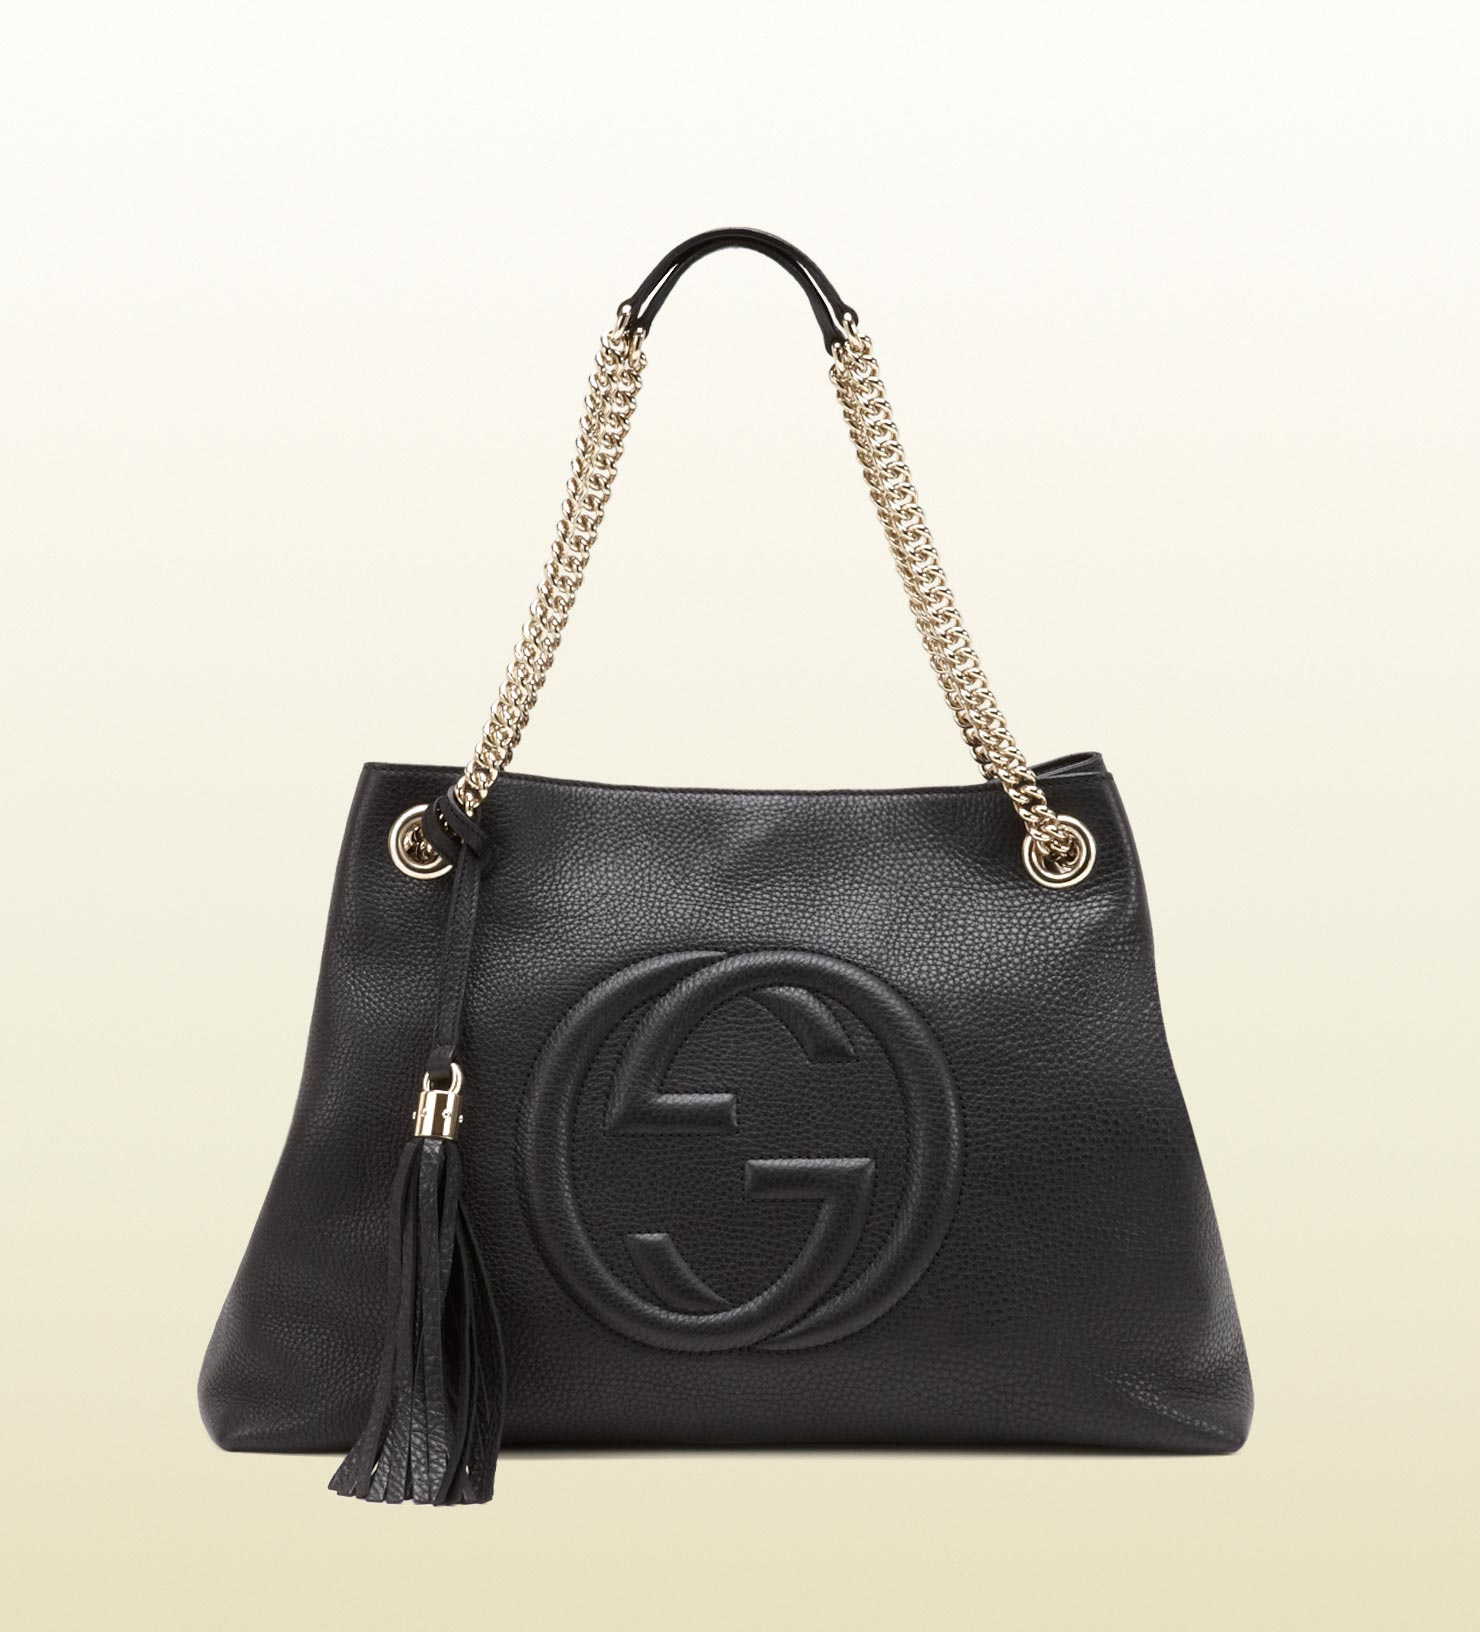 Gucci Soho Shoulder Bag Sale – Shoulder Travel Bag